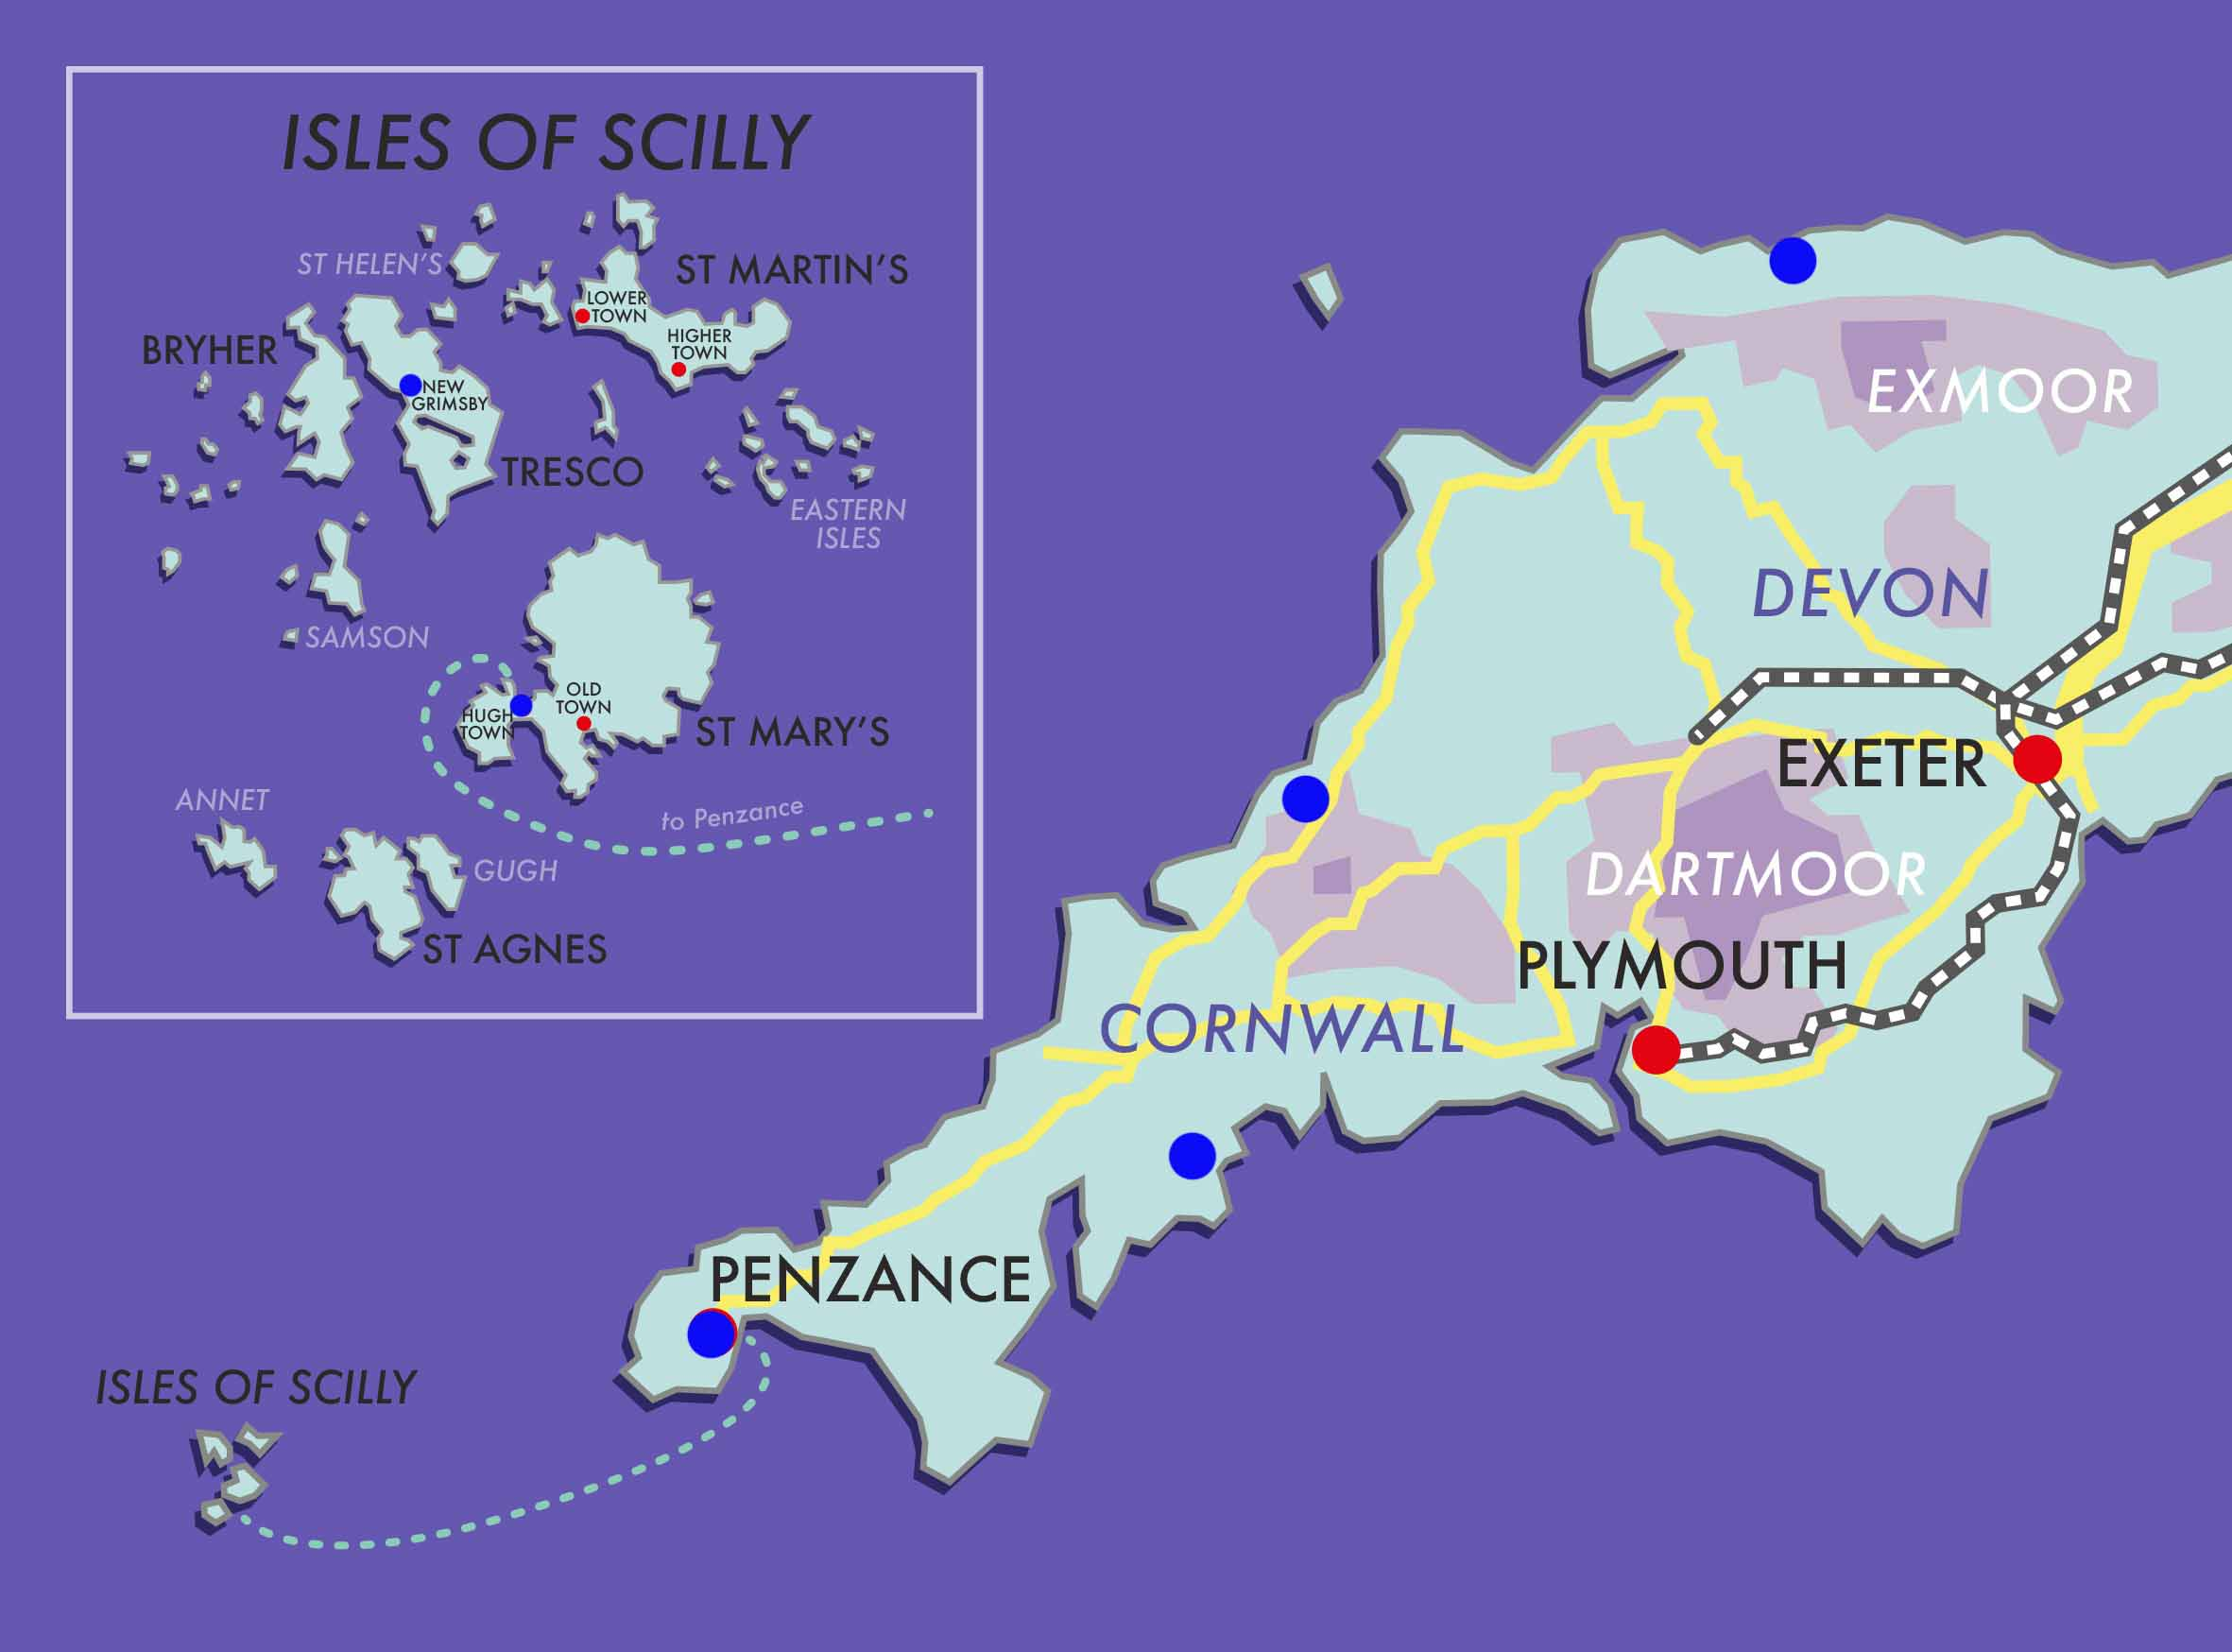 Devon, Cornwall & The Isles of Scilly